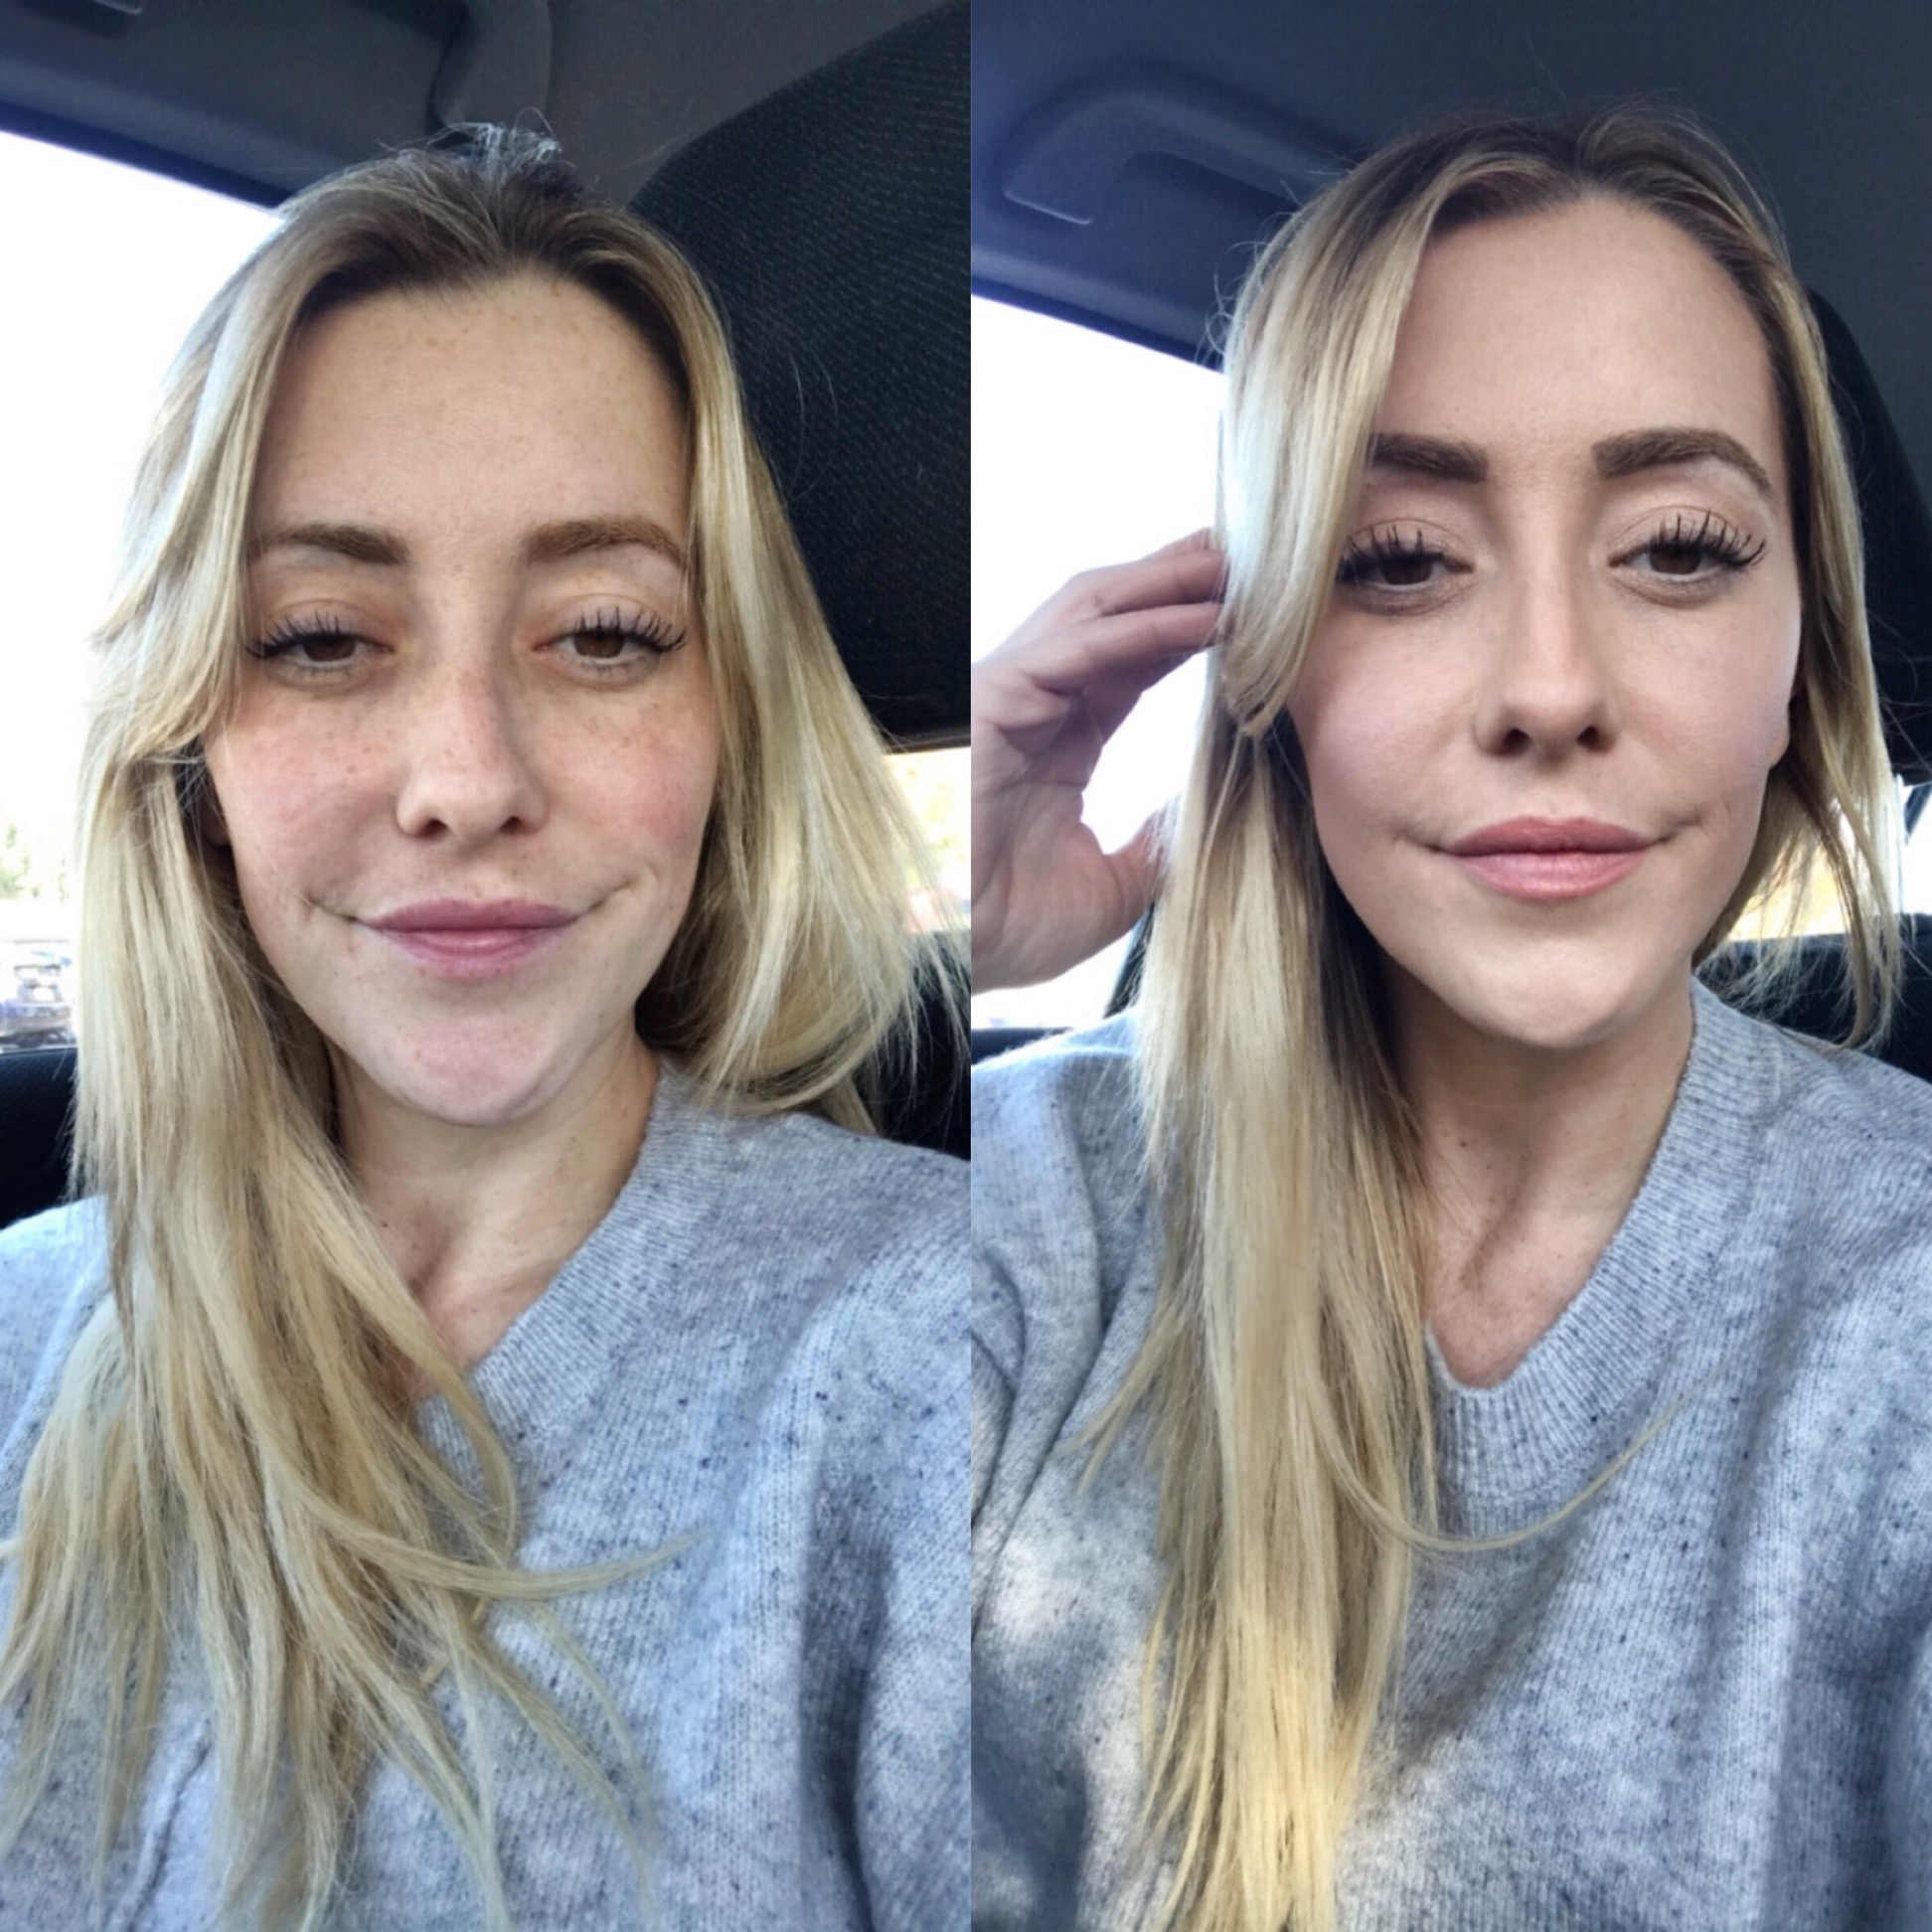 8 Reasons to Love Maskcara Makeup (and Why I Ultimately Decided to Sell It) by San Francisco Maskcara Makeup artist and style blogger For the Love